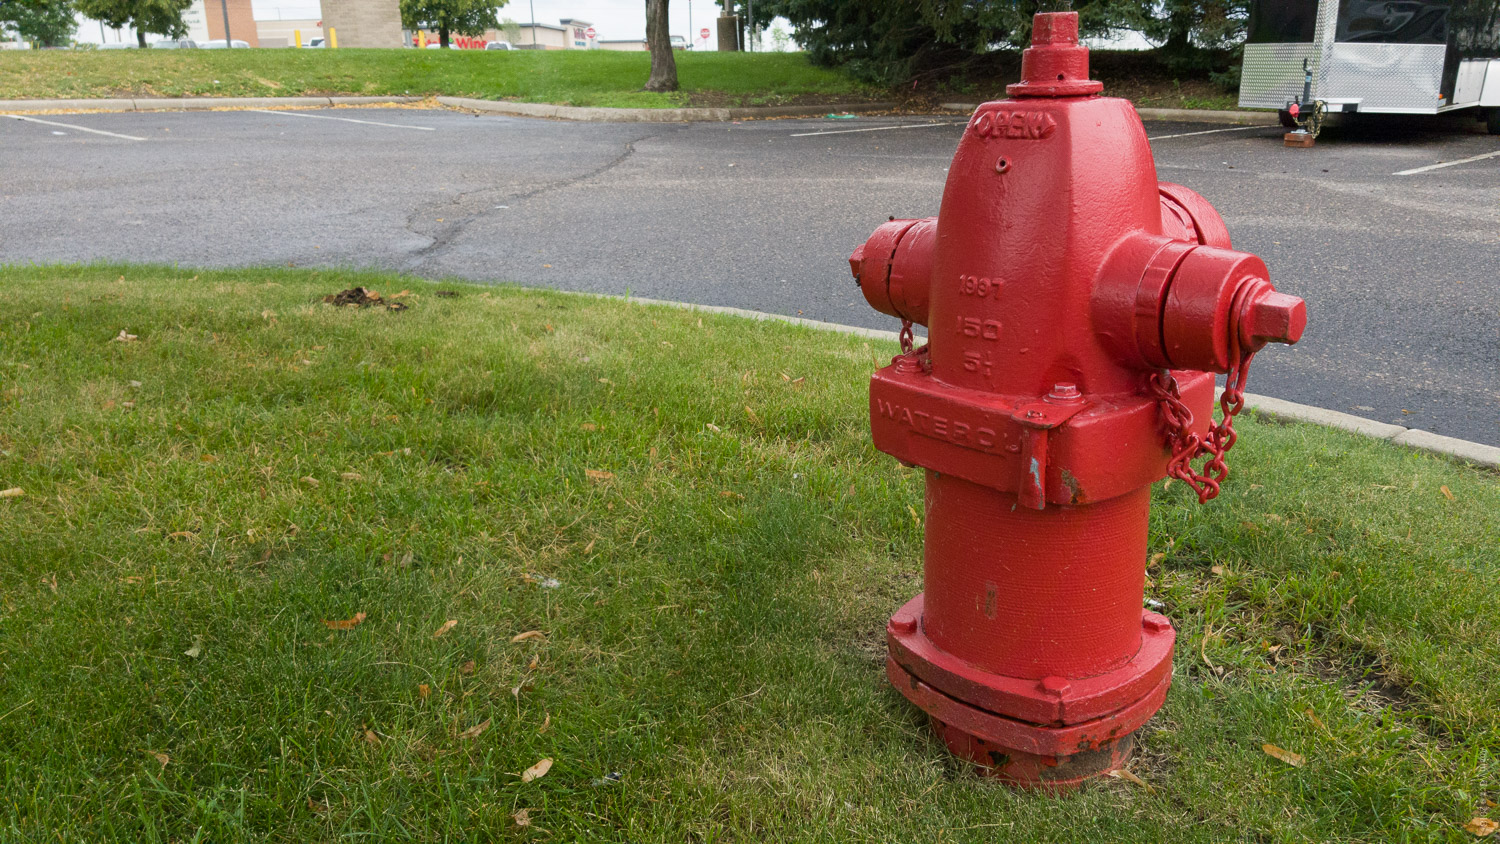 Mobile Phones Versus DSLRs - red fire hydrant